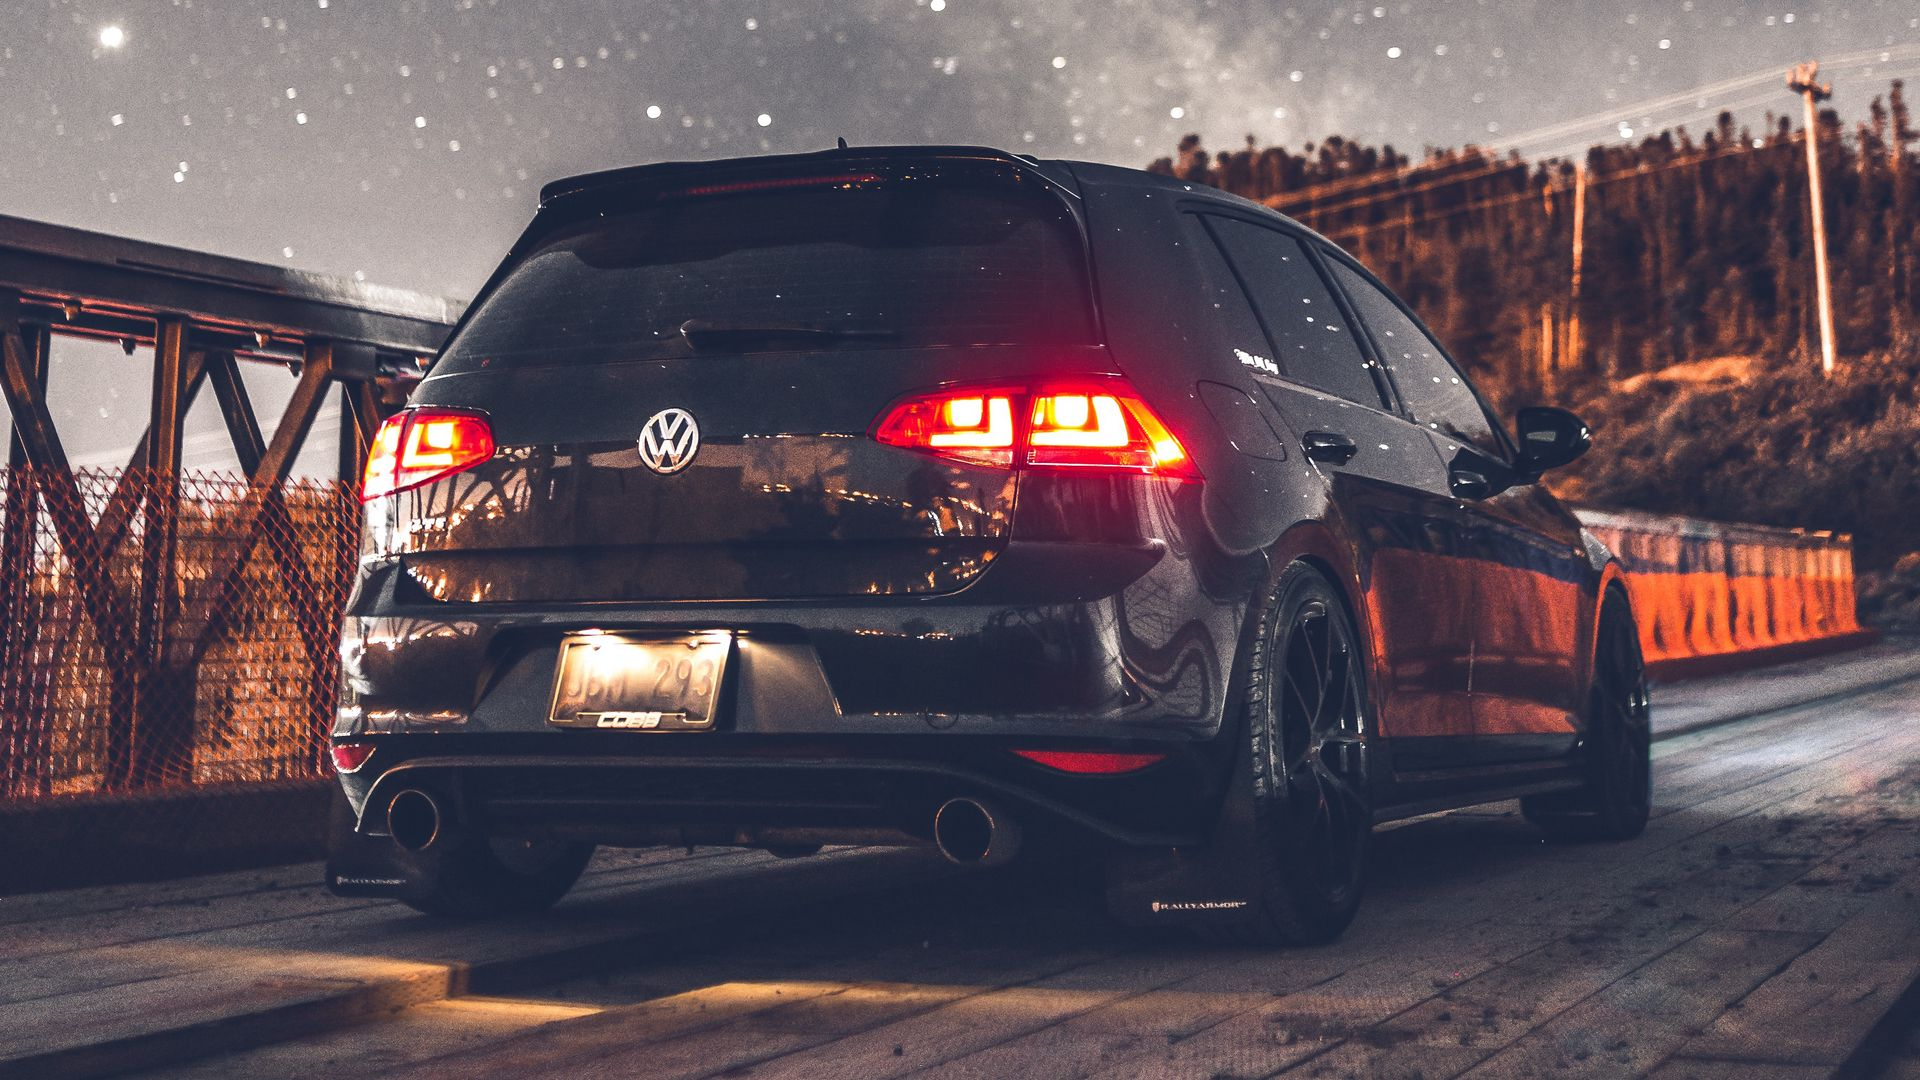 Volkswagen, Car, Rear View Wallpapers Free Download